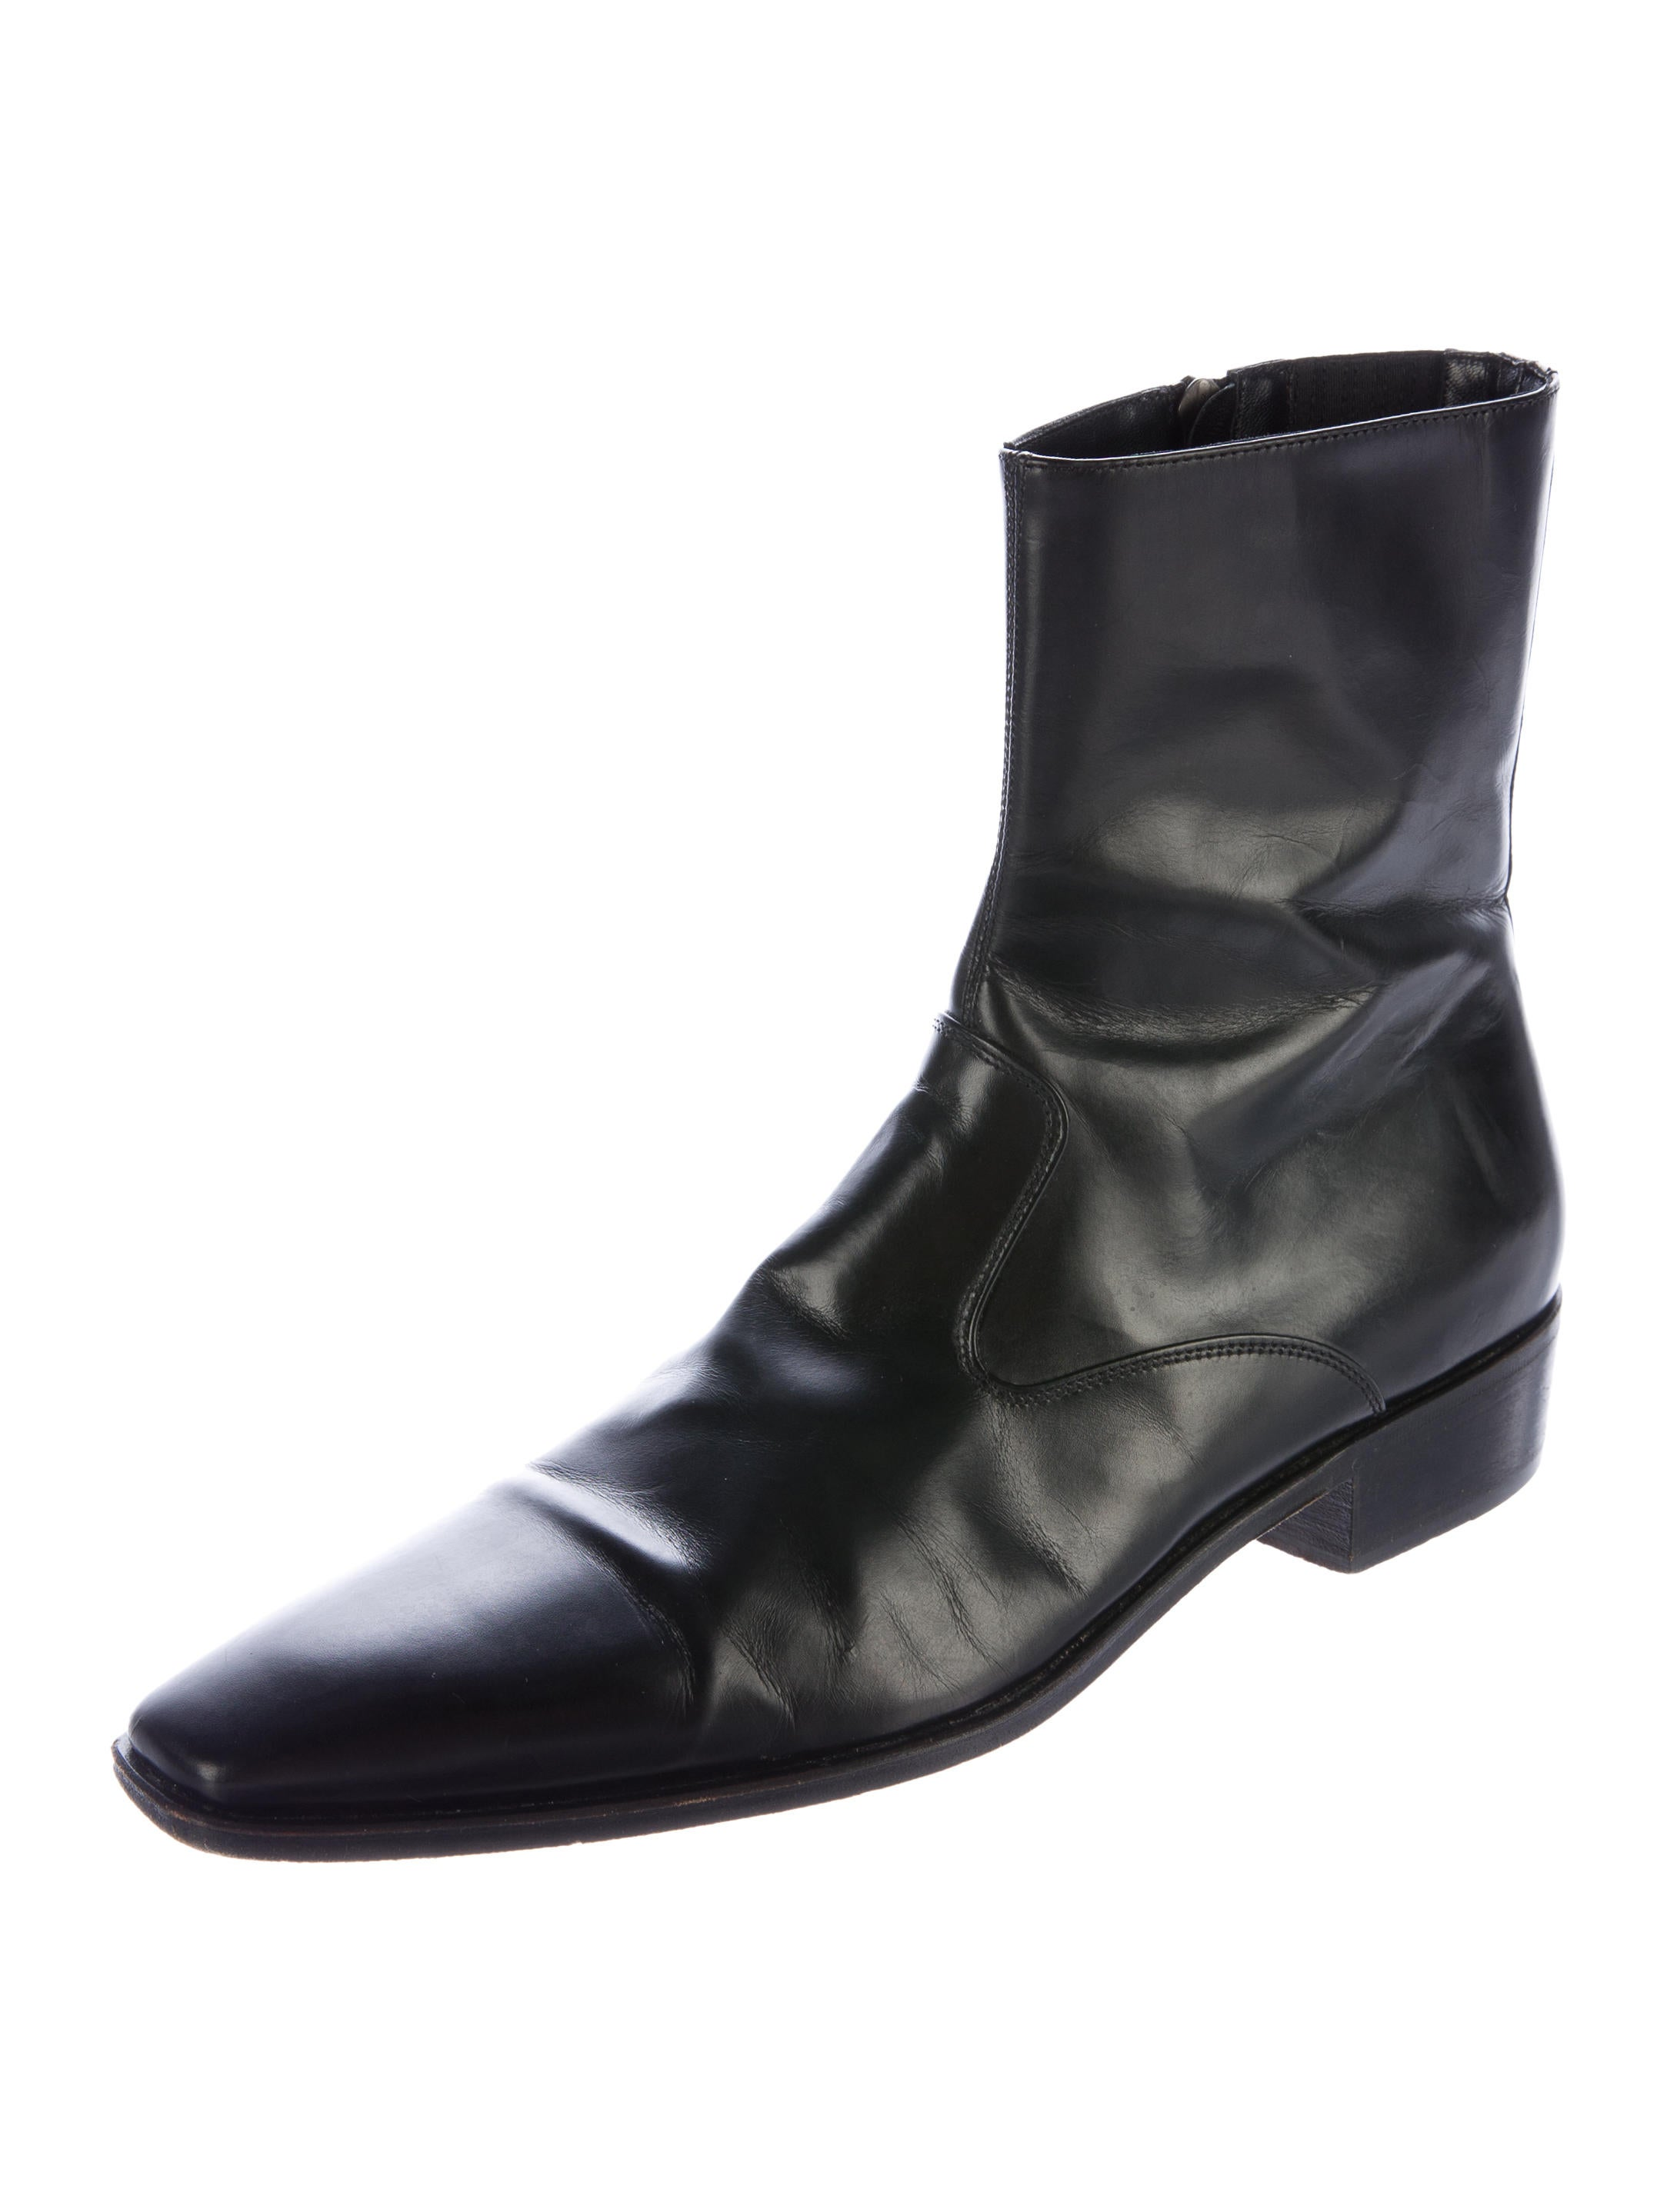 salvatore ferragamo leather pointed toe boots shoes